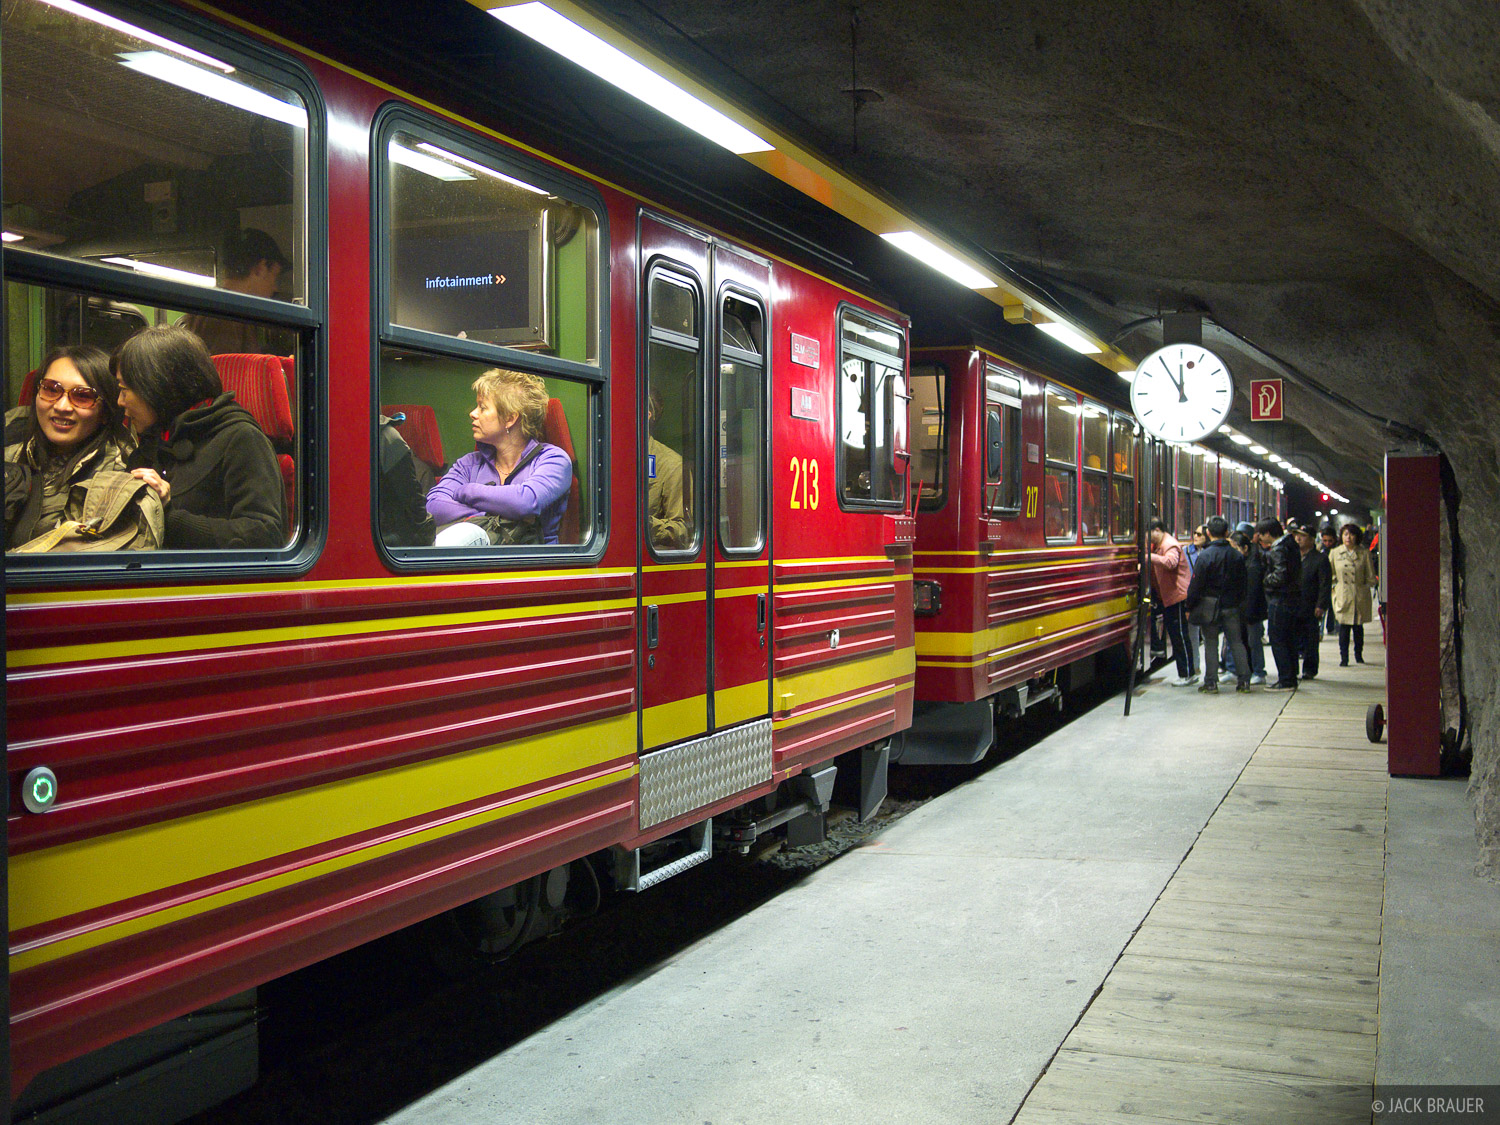 Our ride into the mountains - the Jungfraujoch train which climbs up through tunnels inside of the Eiger mountain.